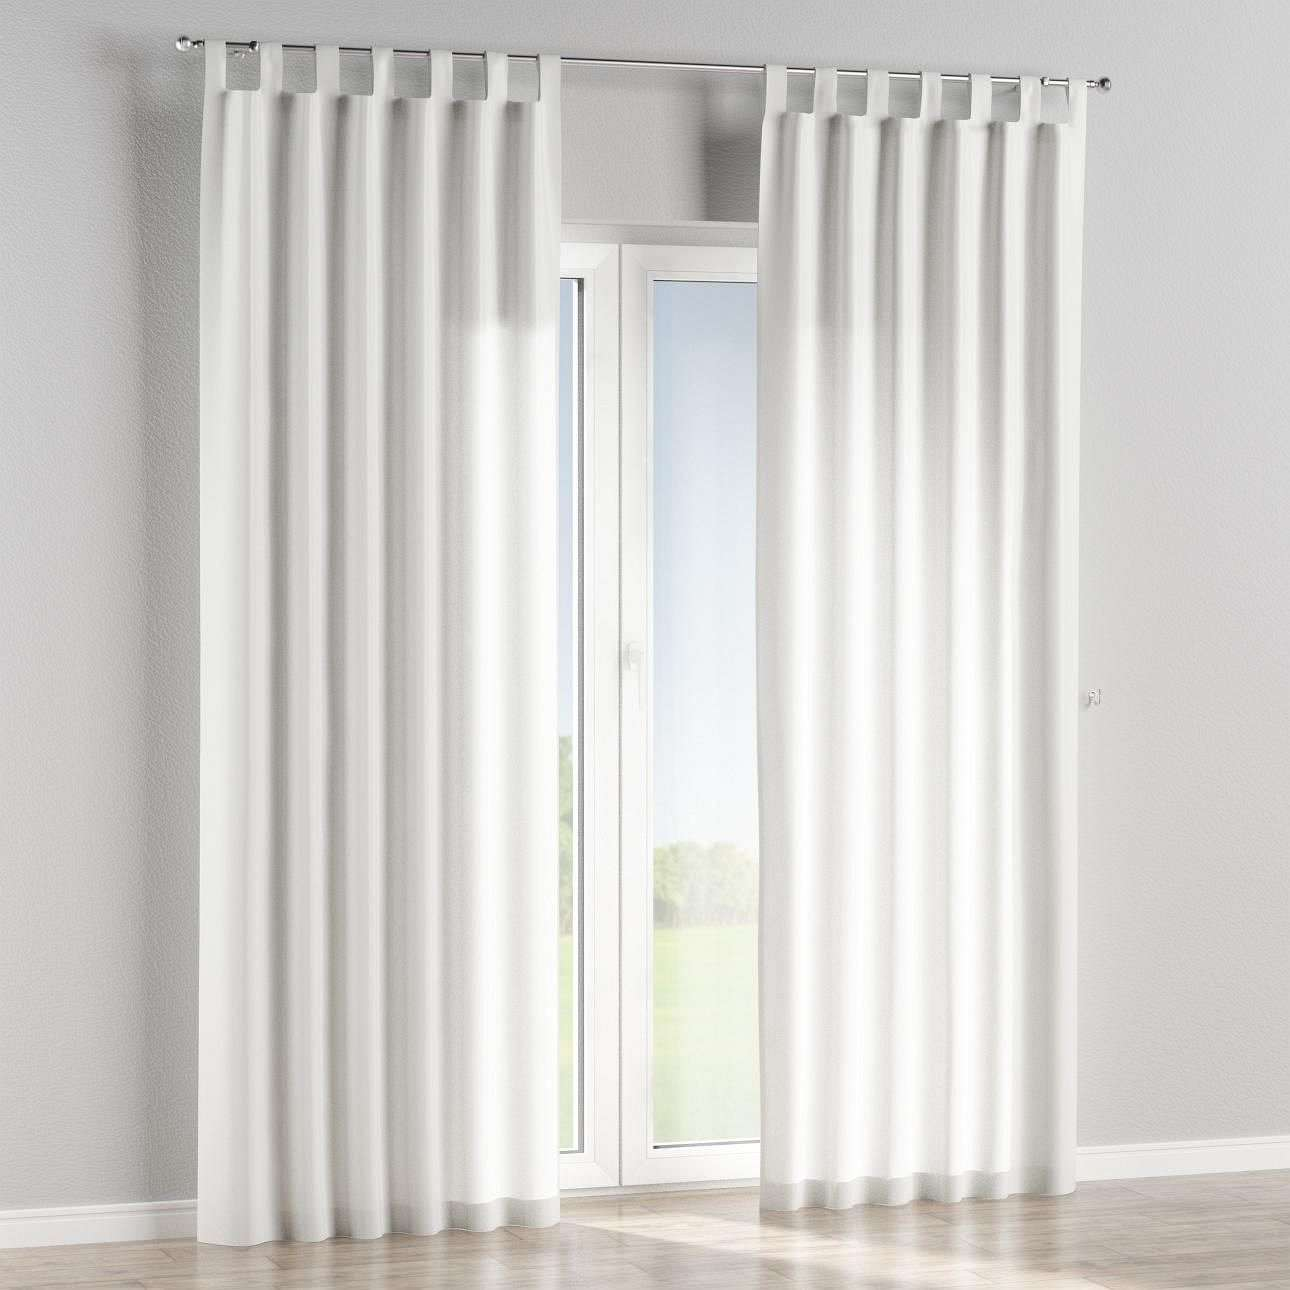 Tab top curtains in collection Cotton Panama, fabric: 702-05